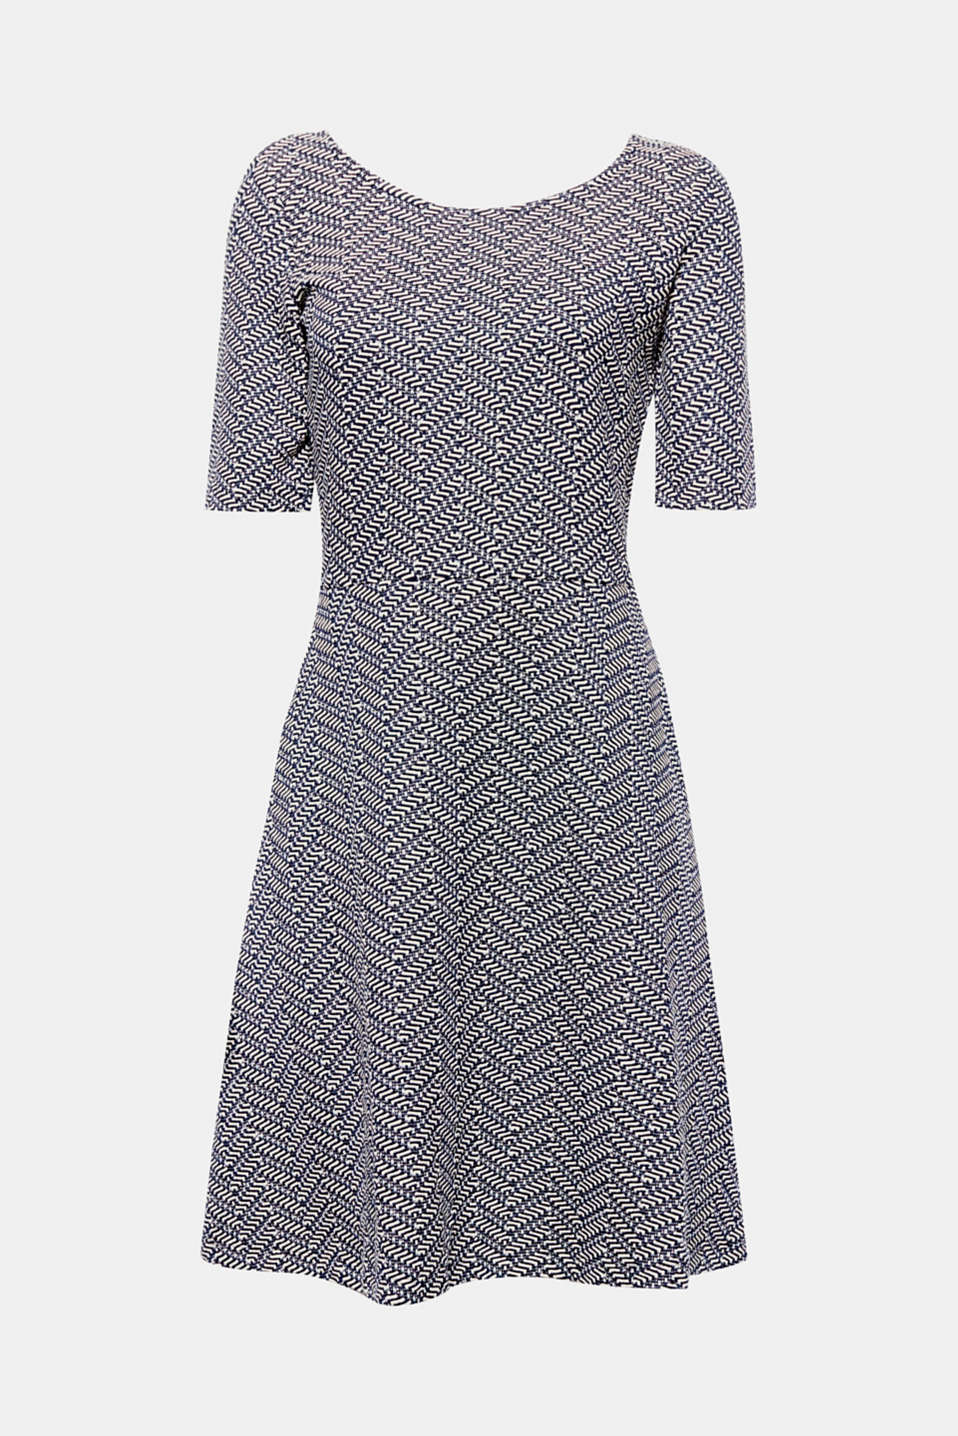 New dresses? Yes please! Here is a design in dense jersey with a striking zigzag texture and a swirling skirt.